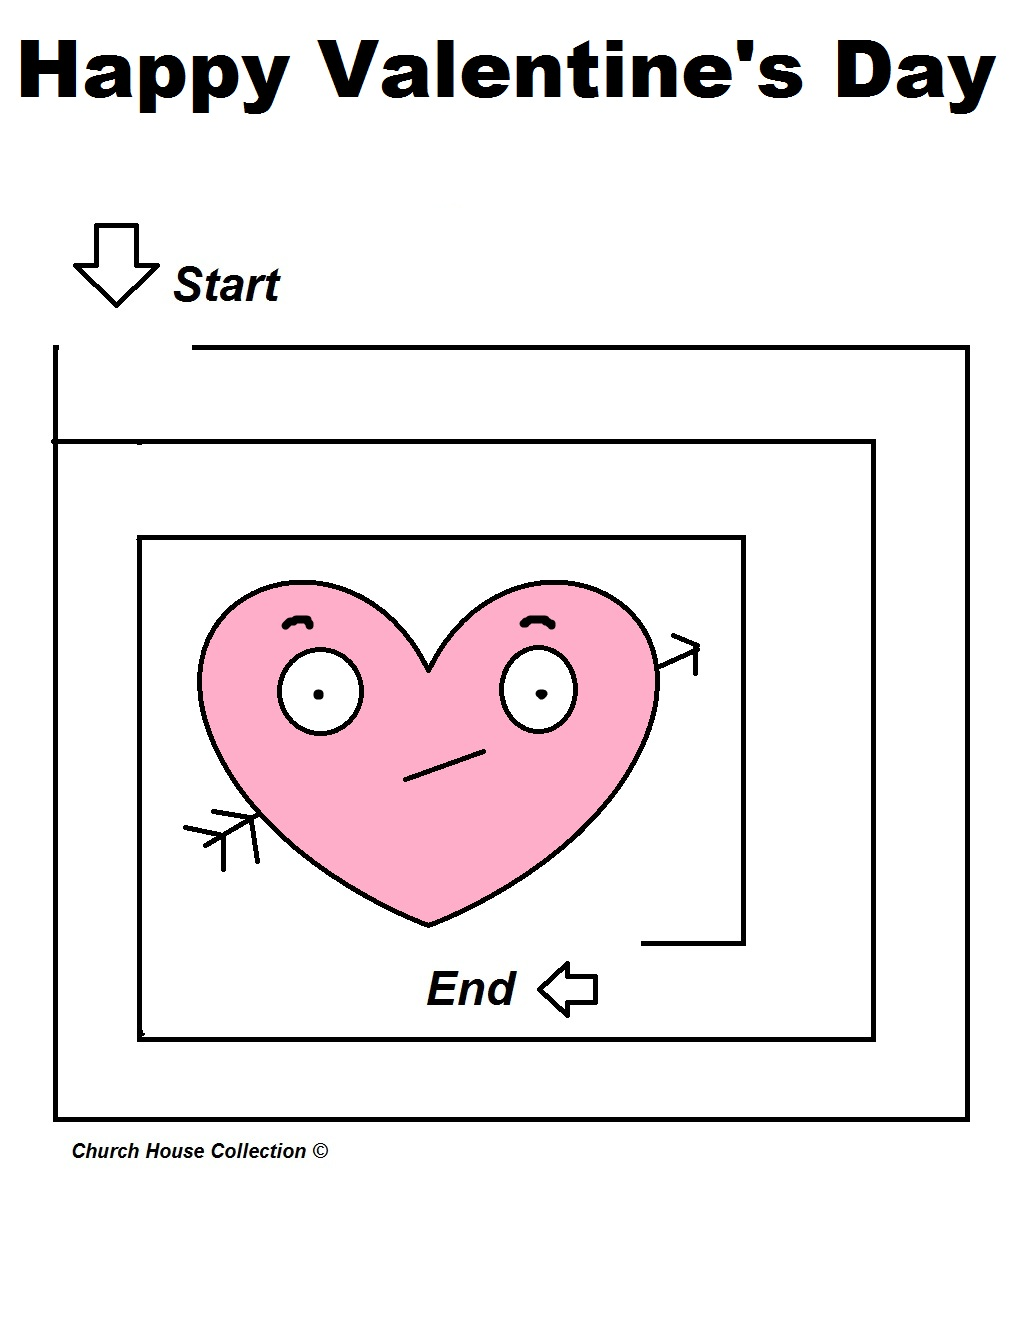 Patrick sharp valentines day printable coloring pages